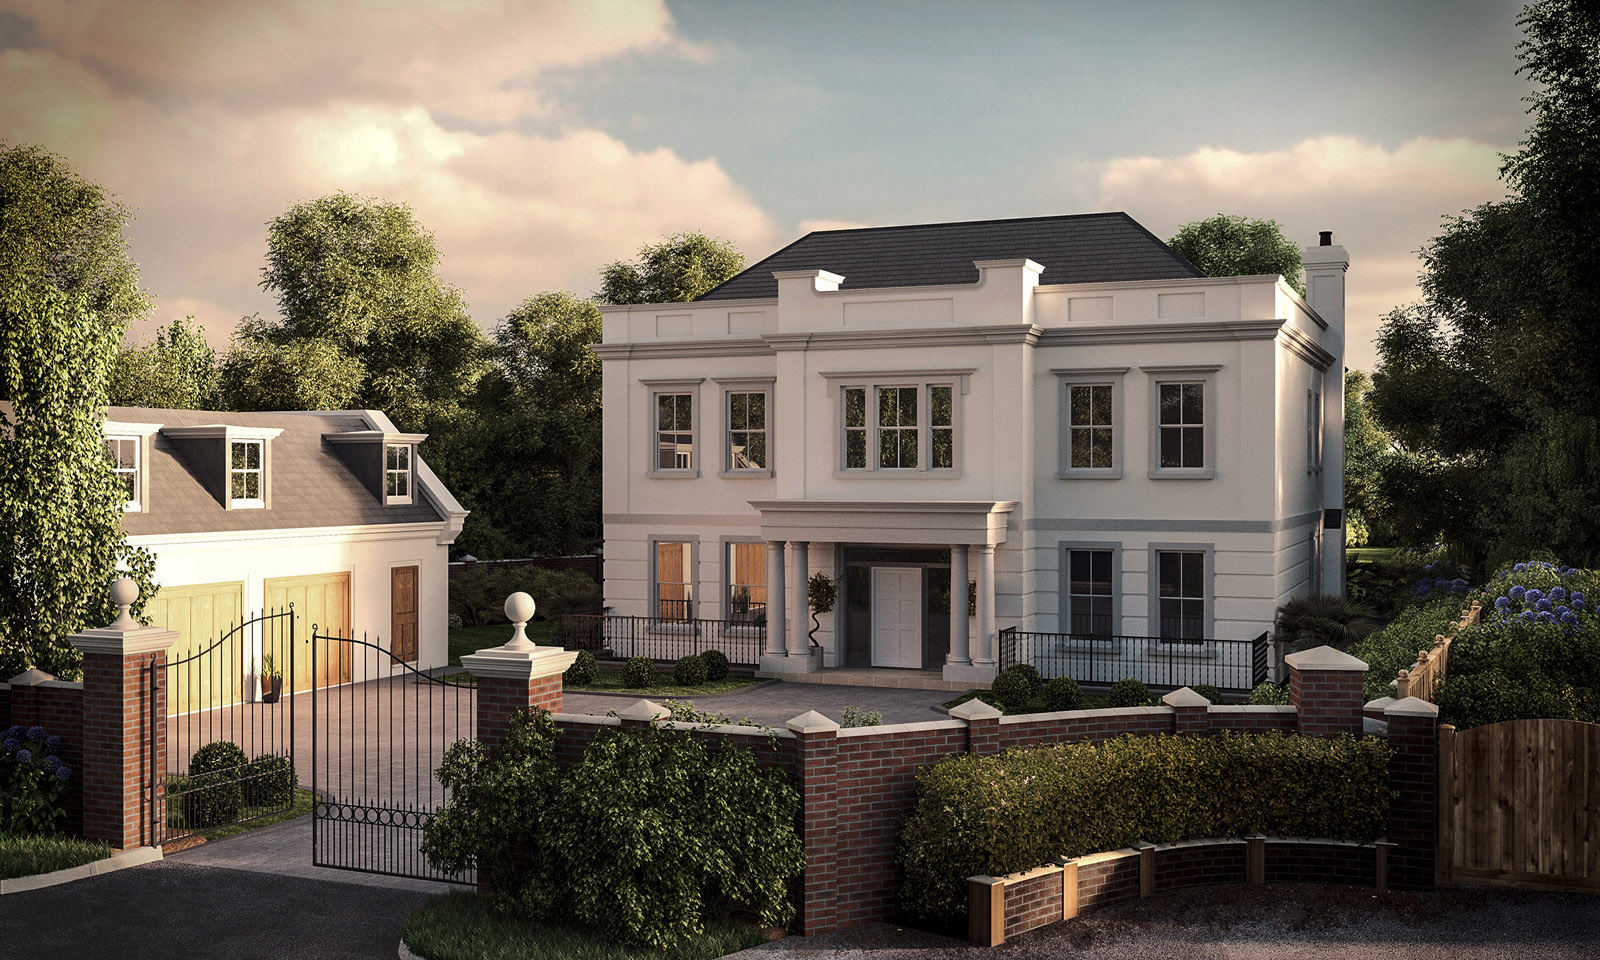 Property Marketing visual in Ascot